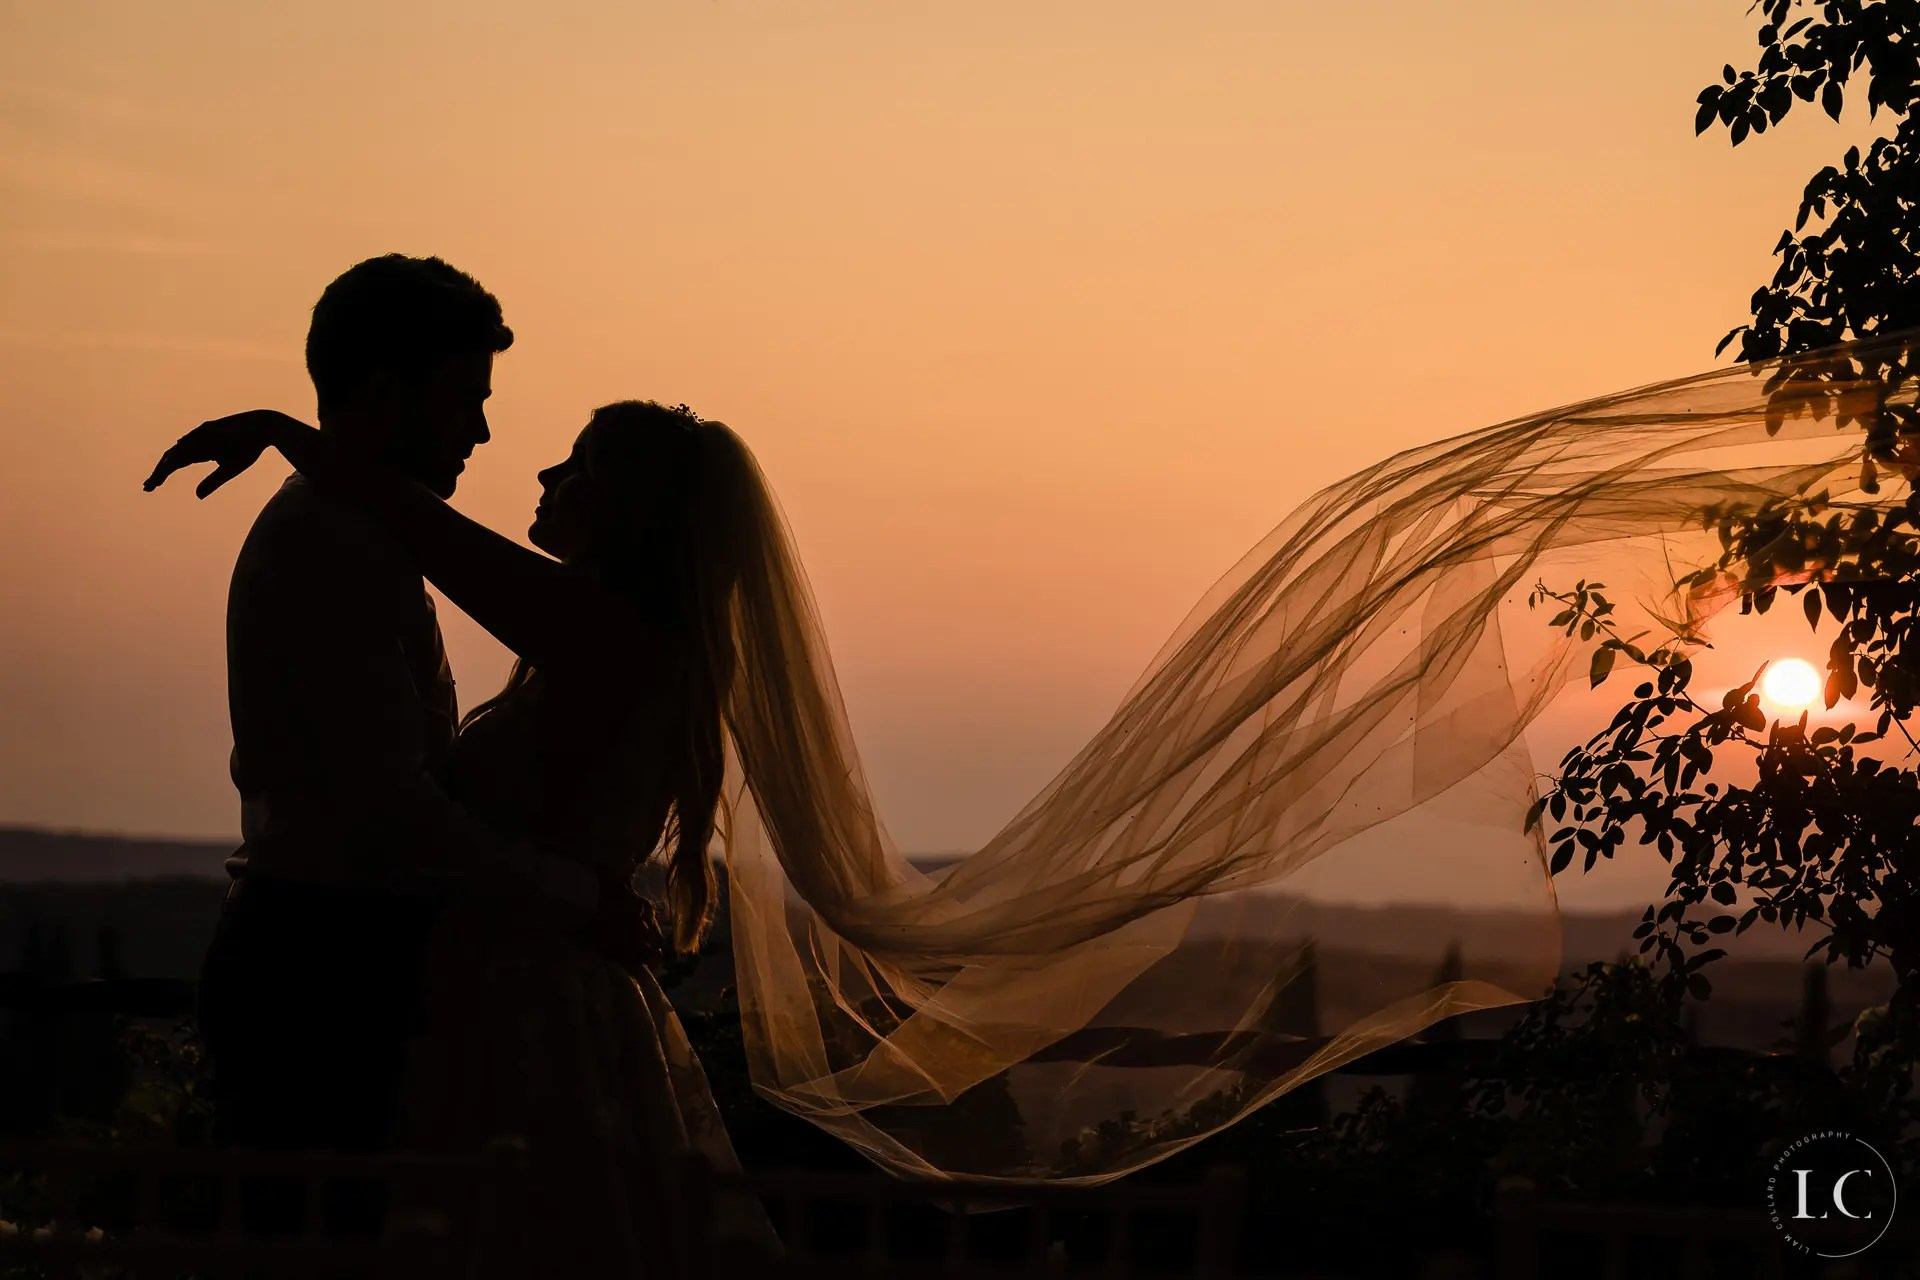 Shadows of bride and groom embracing